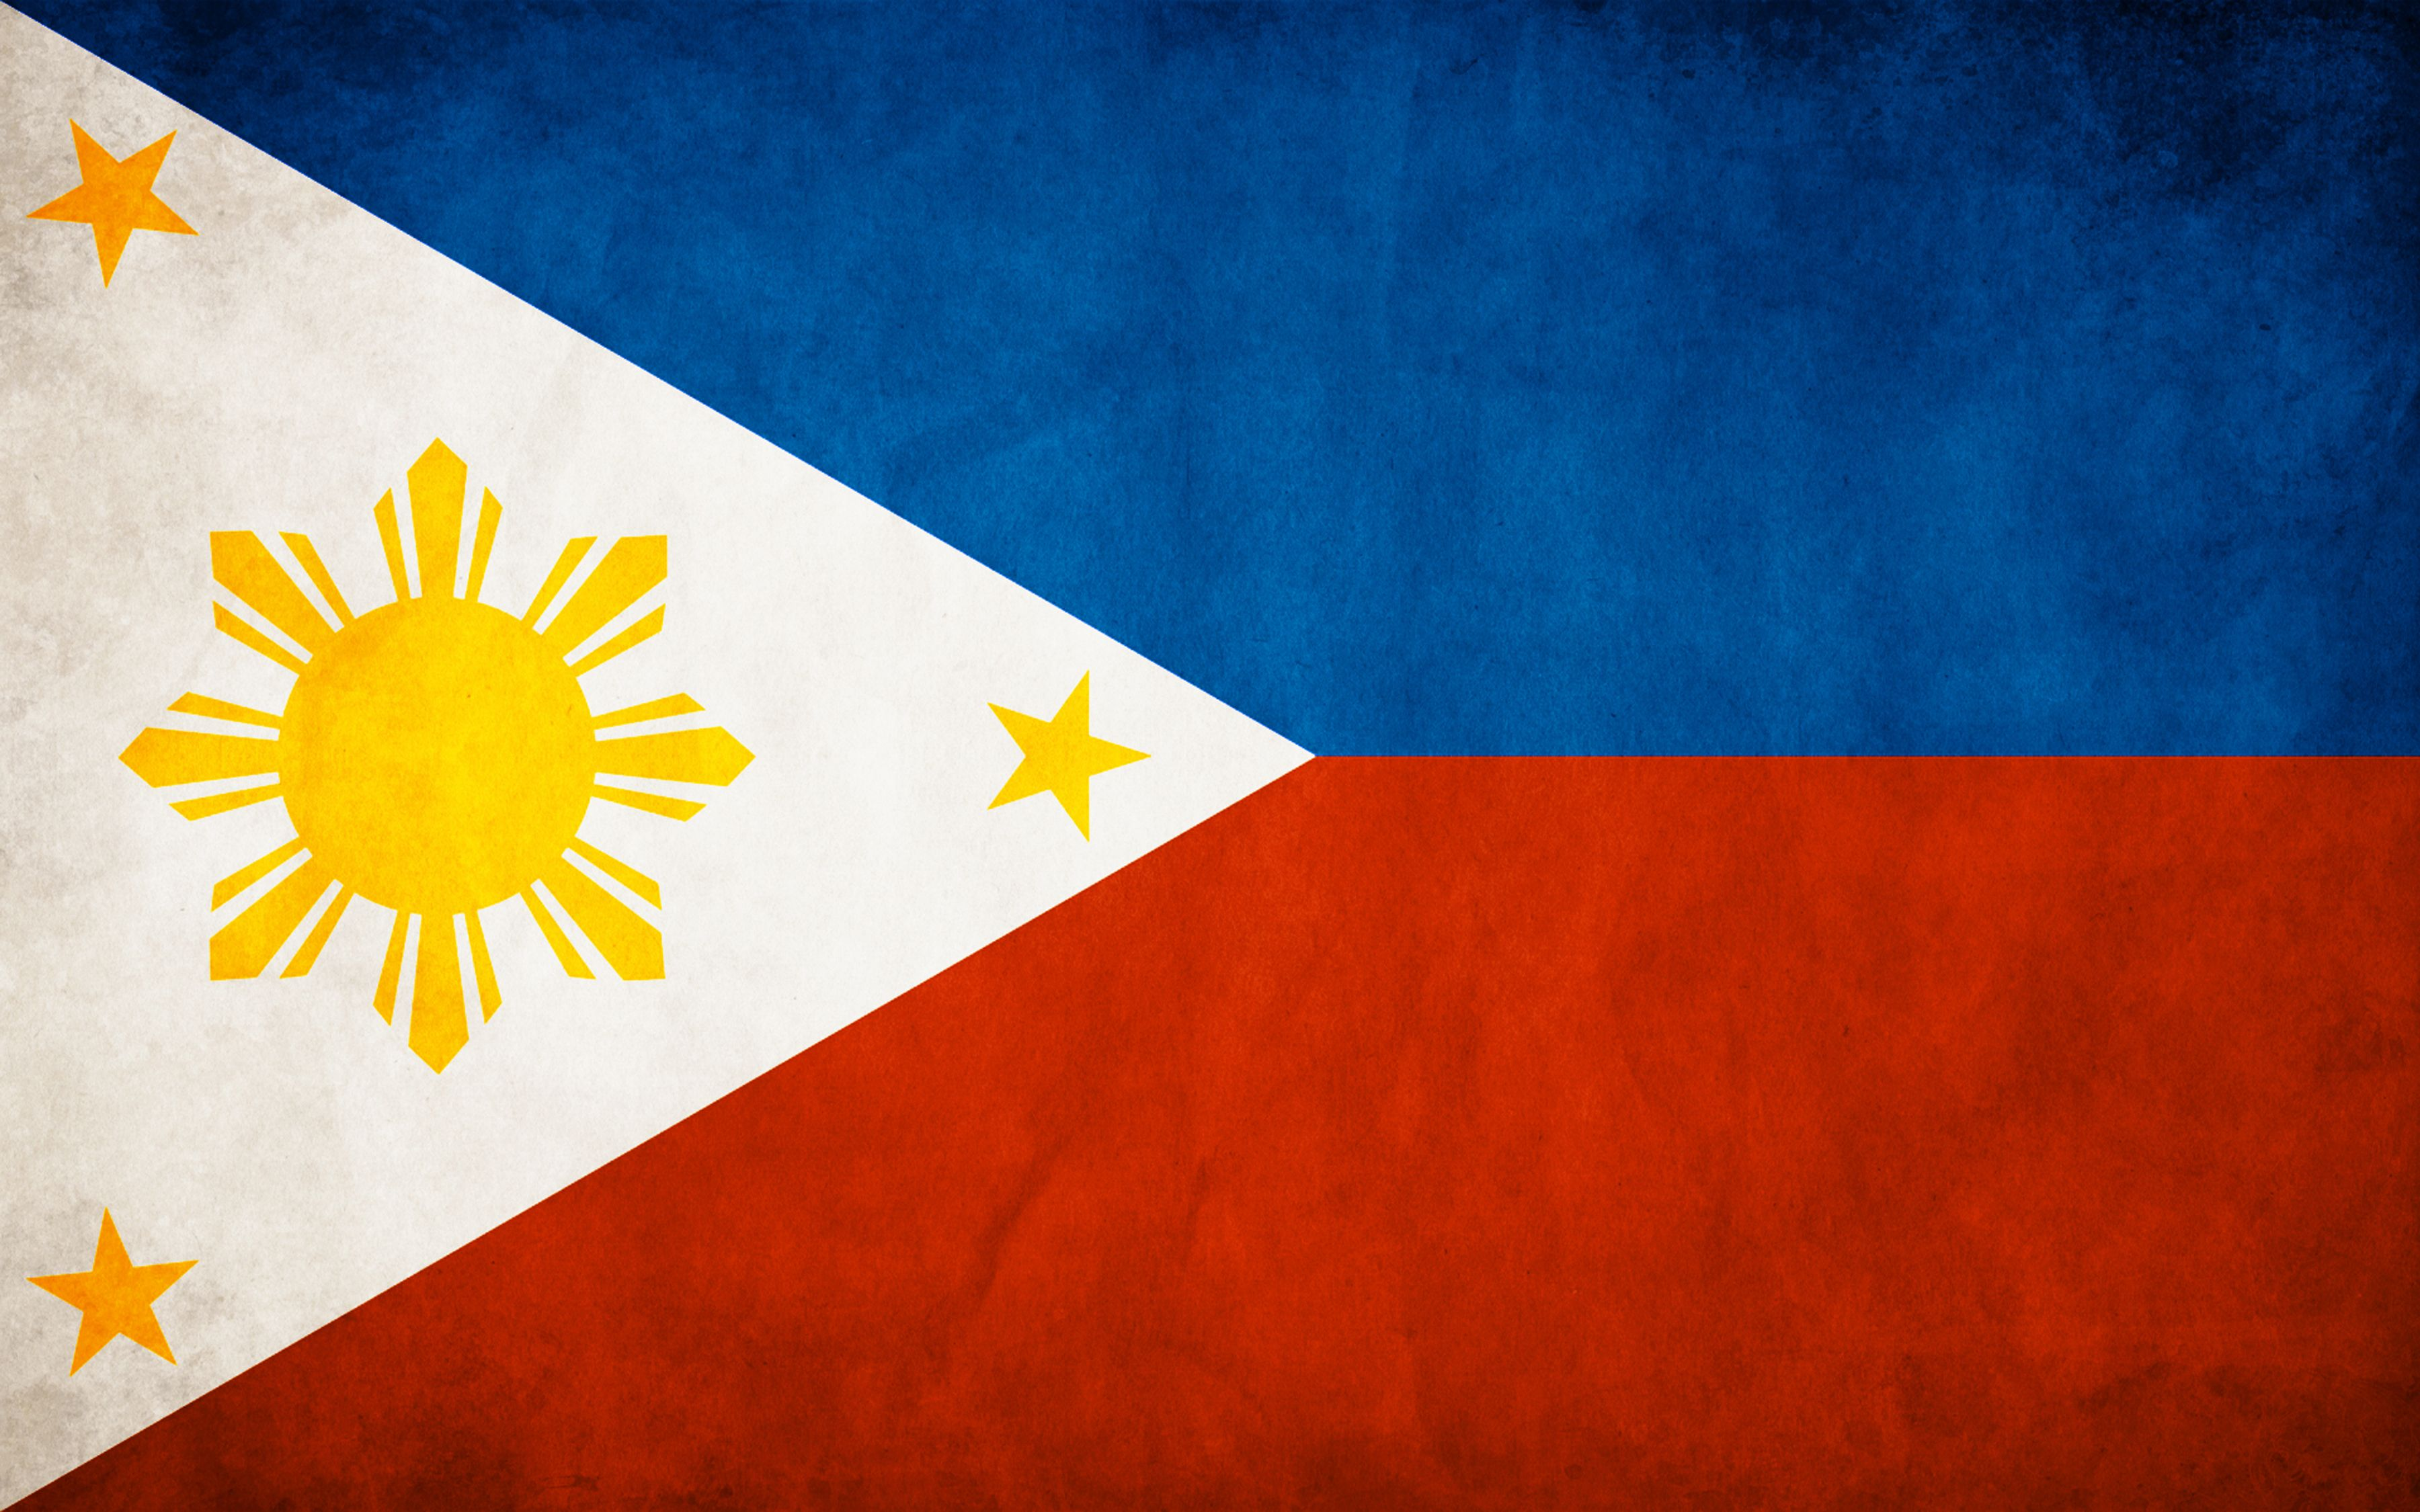 Philippine flag wallpapers top free philippine flag backgrounds wallpaperaccess - Philippine flag images ...